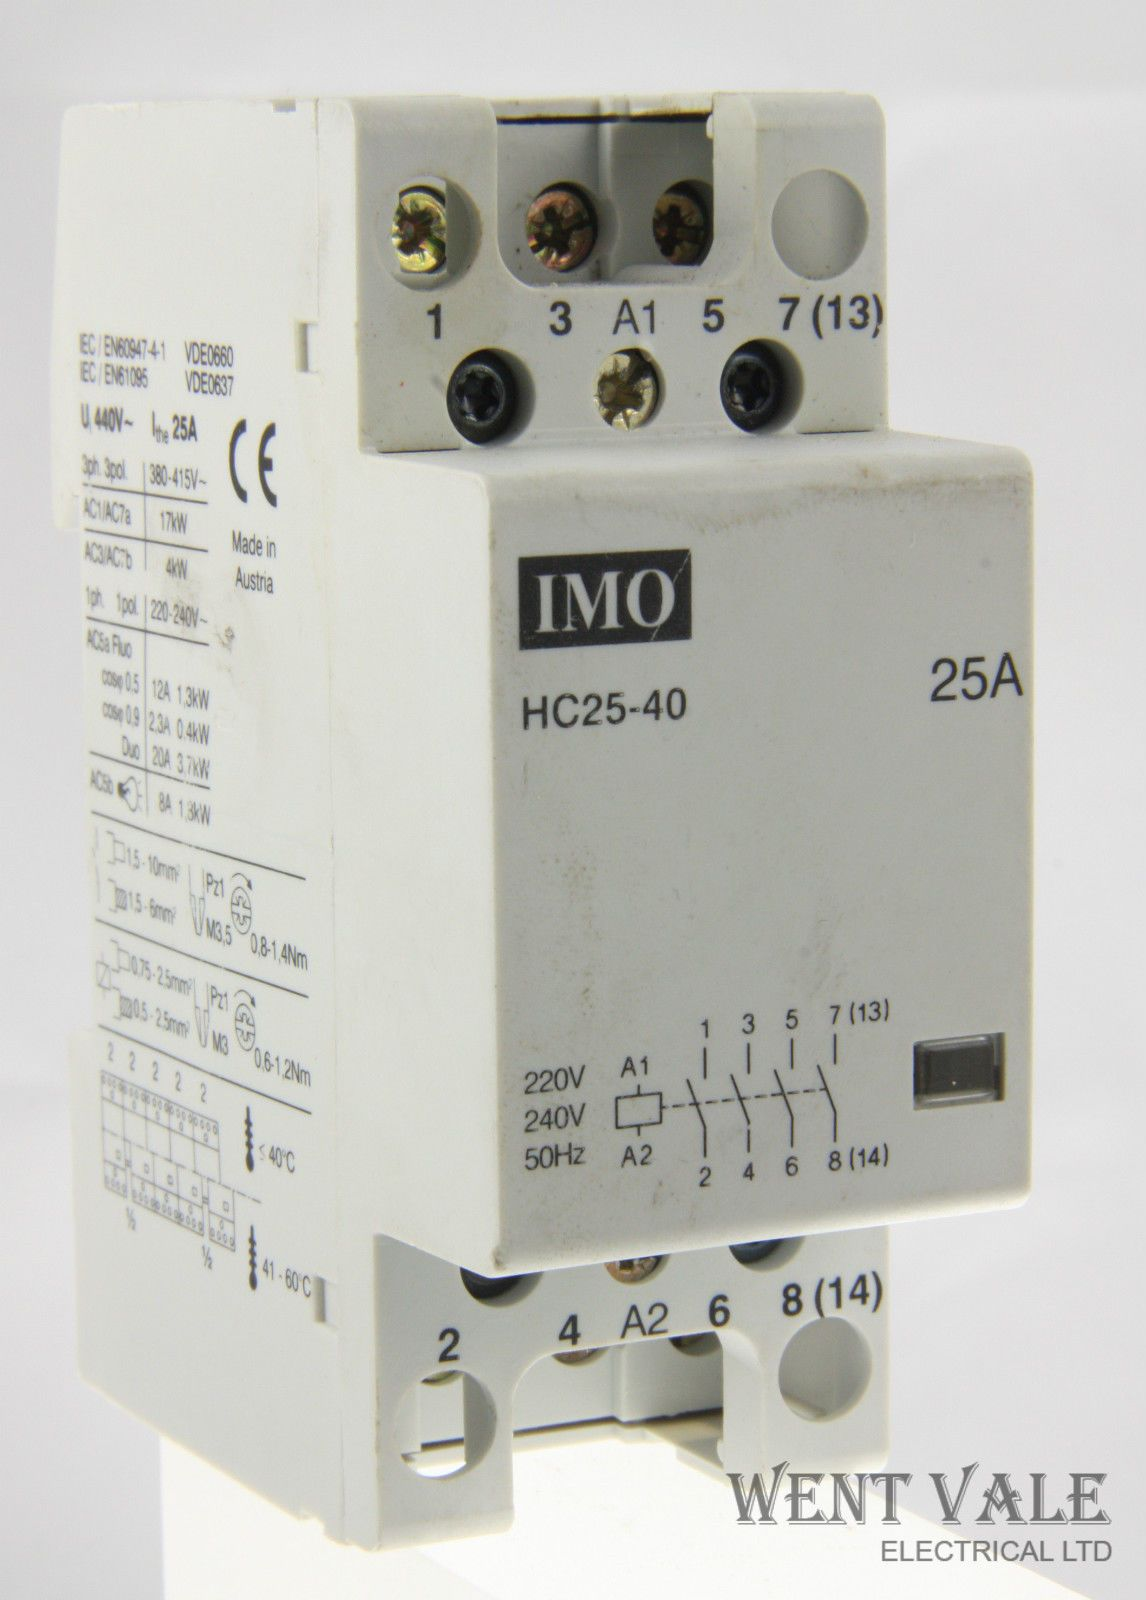 IMO HC25-40 - 25a Four Pole Normally Open Contactor with 220-240 vac on